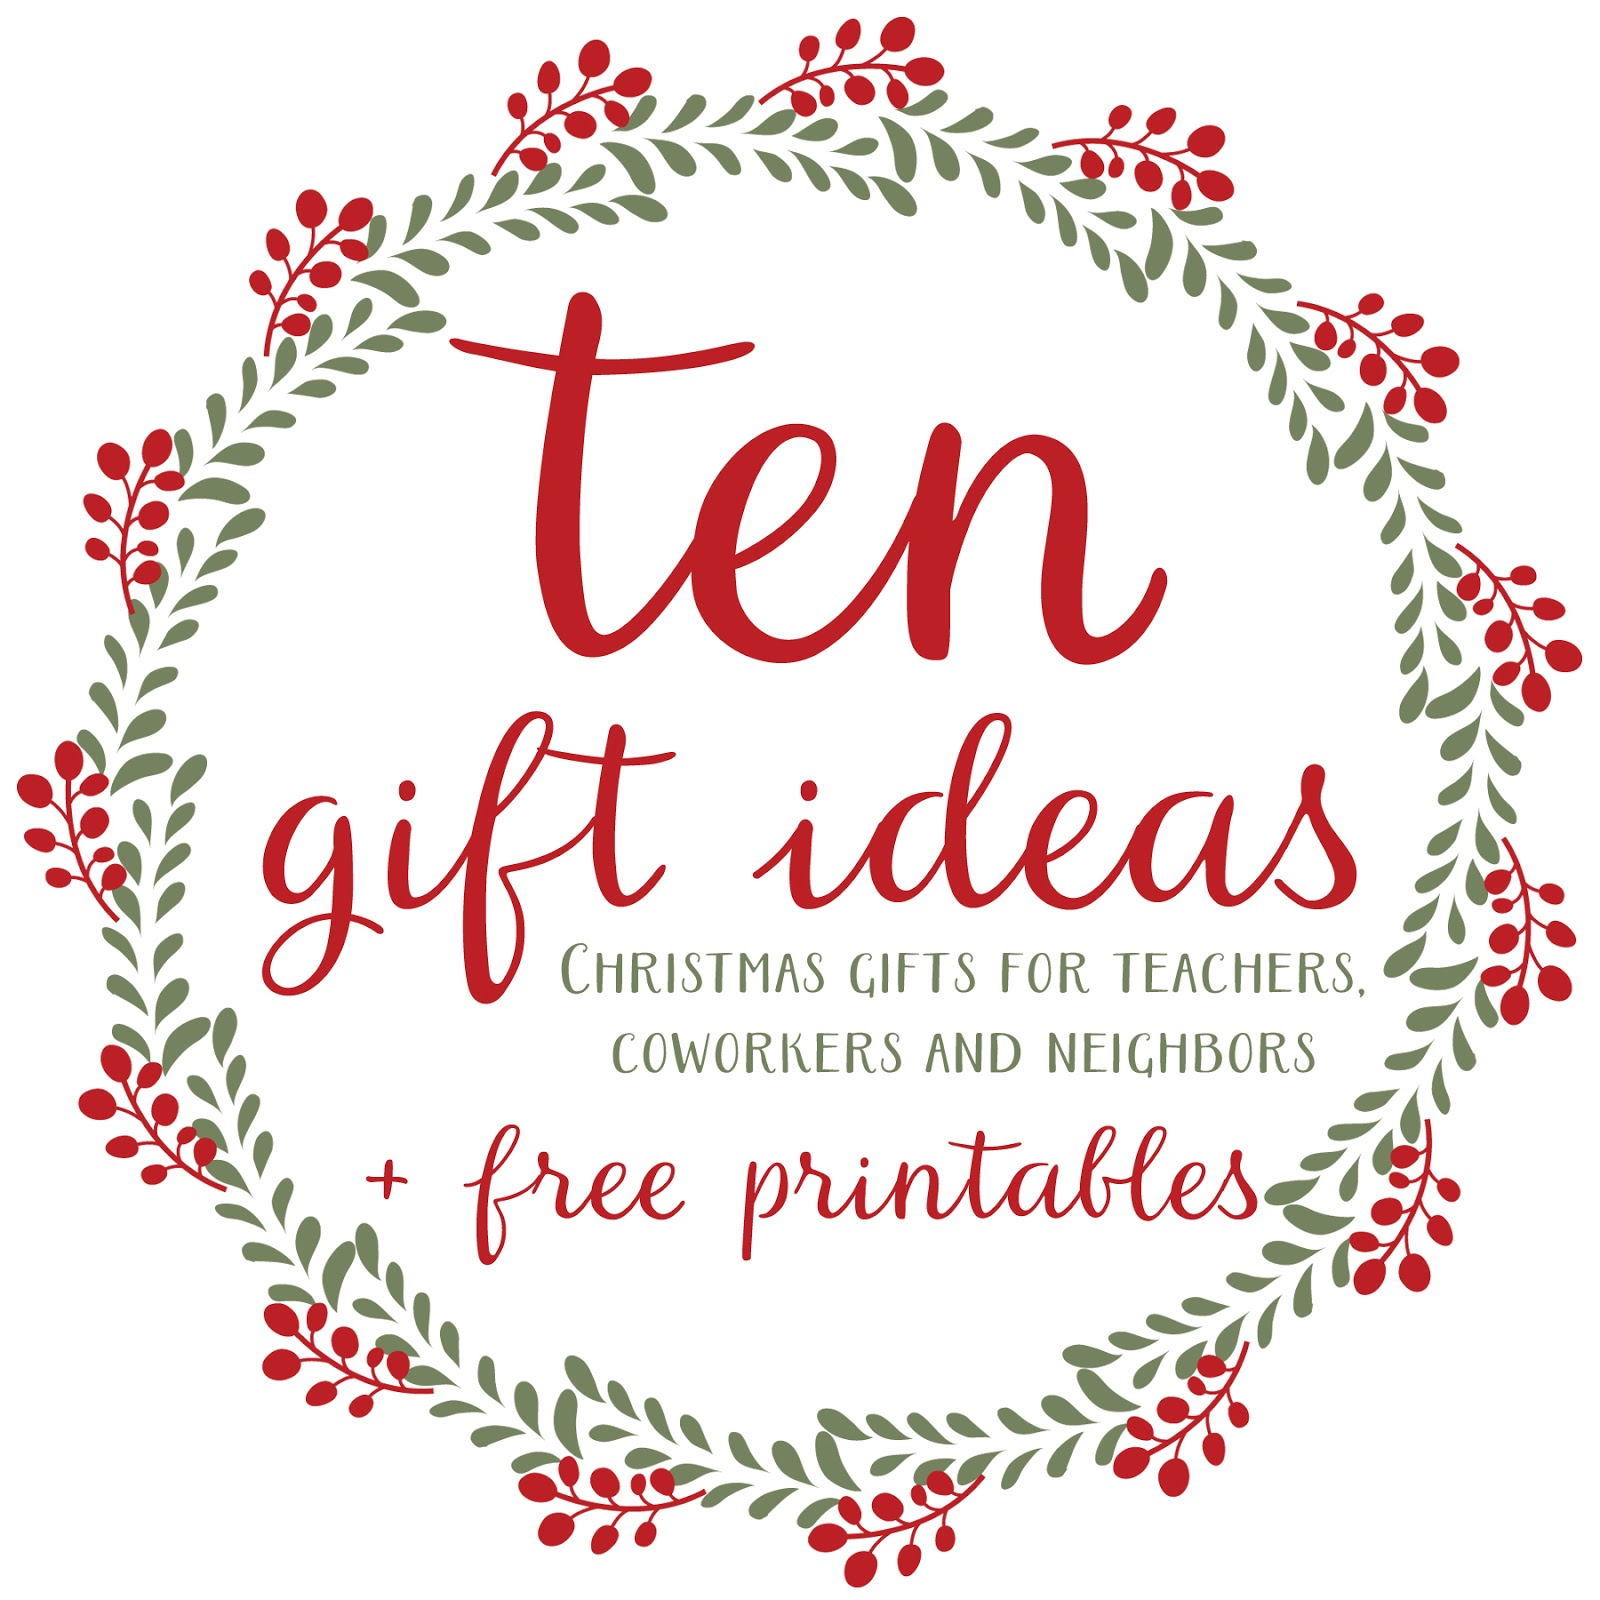 ten christmas gifts for teachers neighbors and coworkers free printables